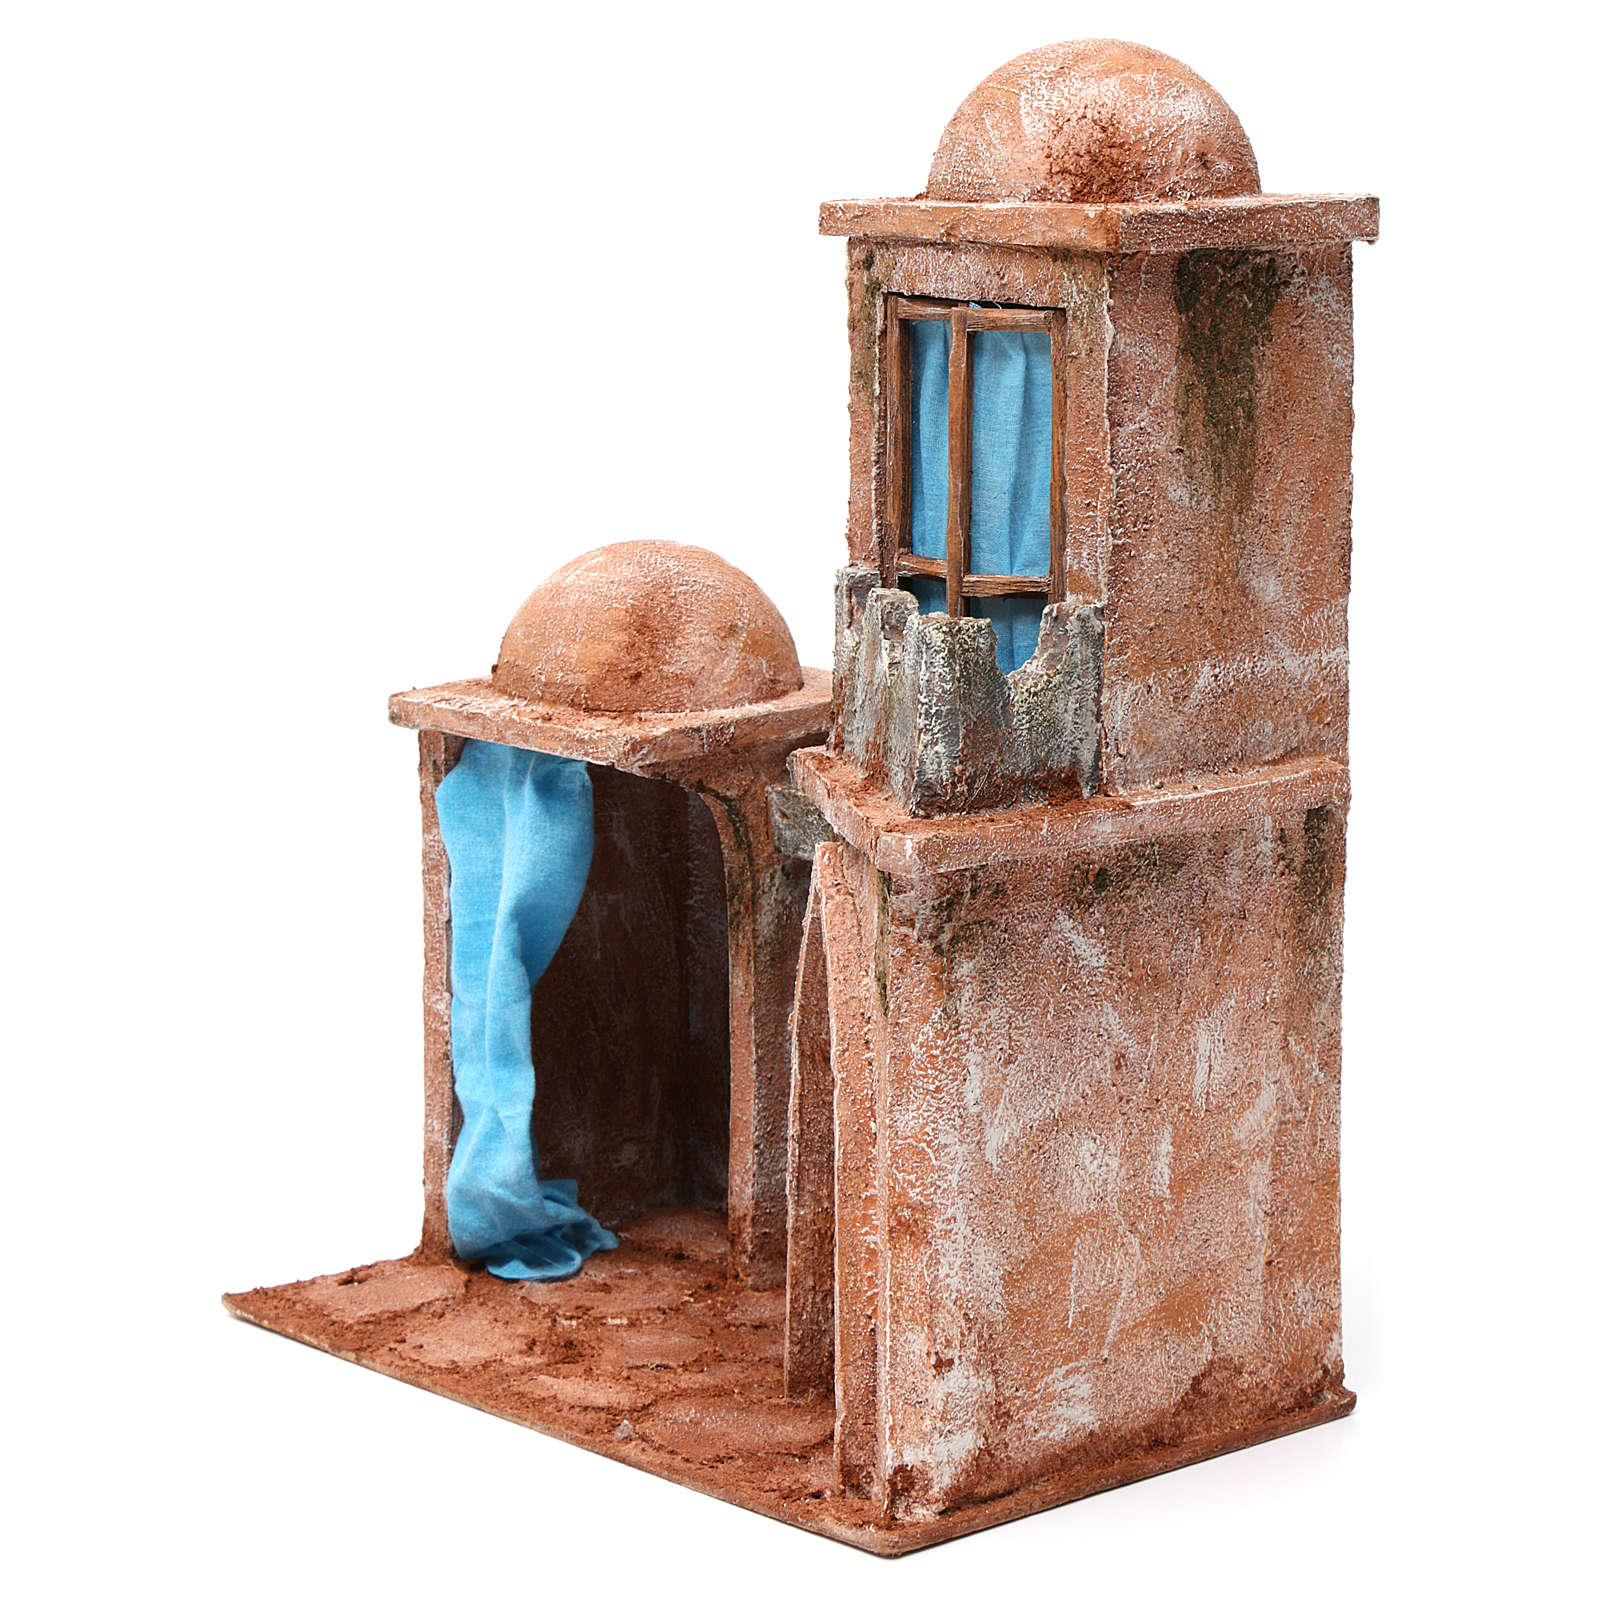 Arab house with domes, pointed arch and blue curtains for 12 cm nativity scene 4